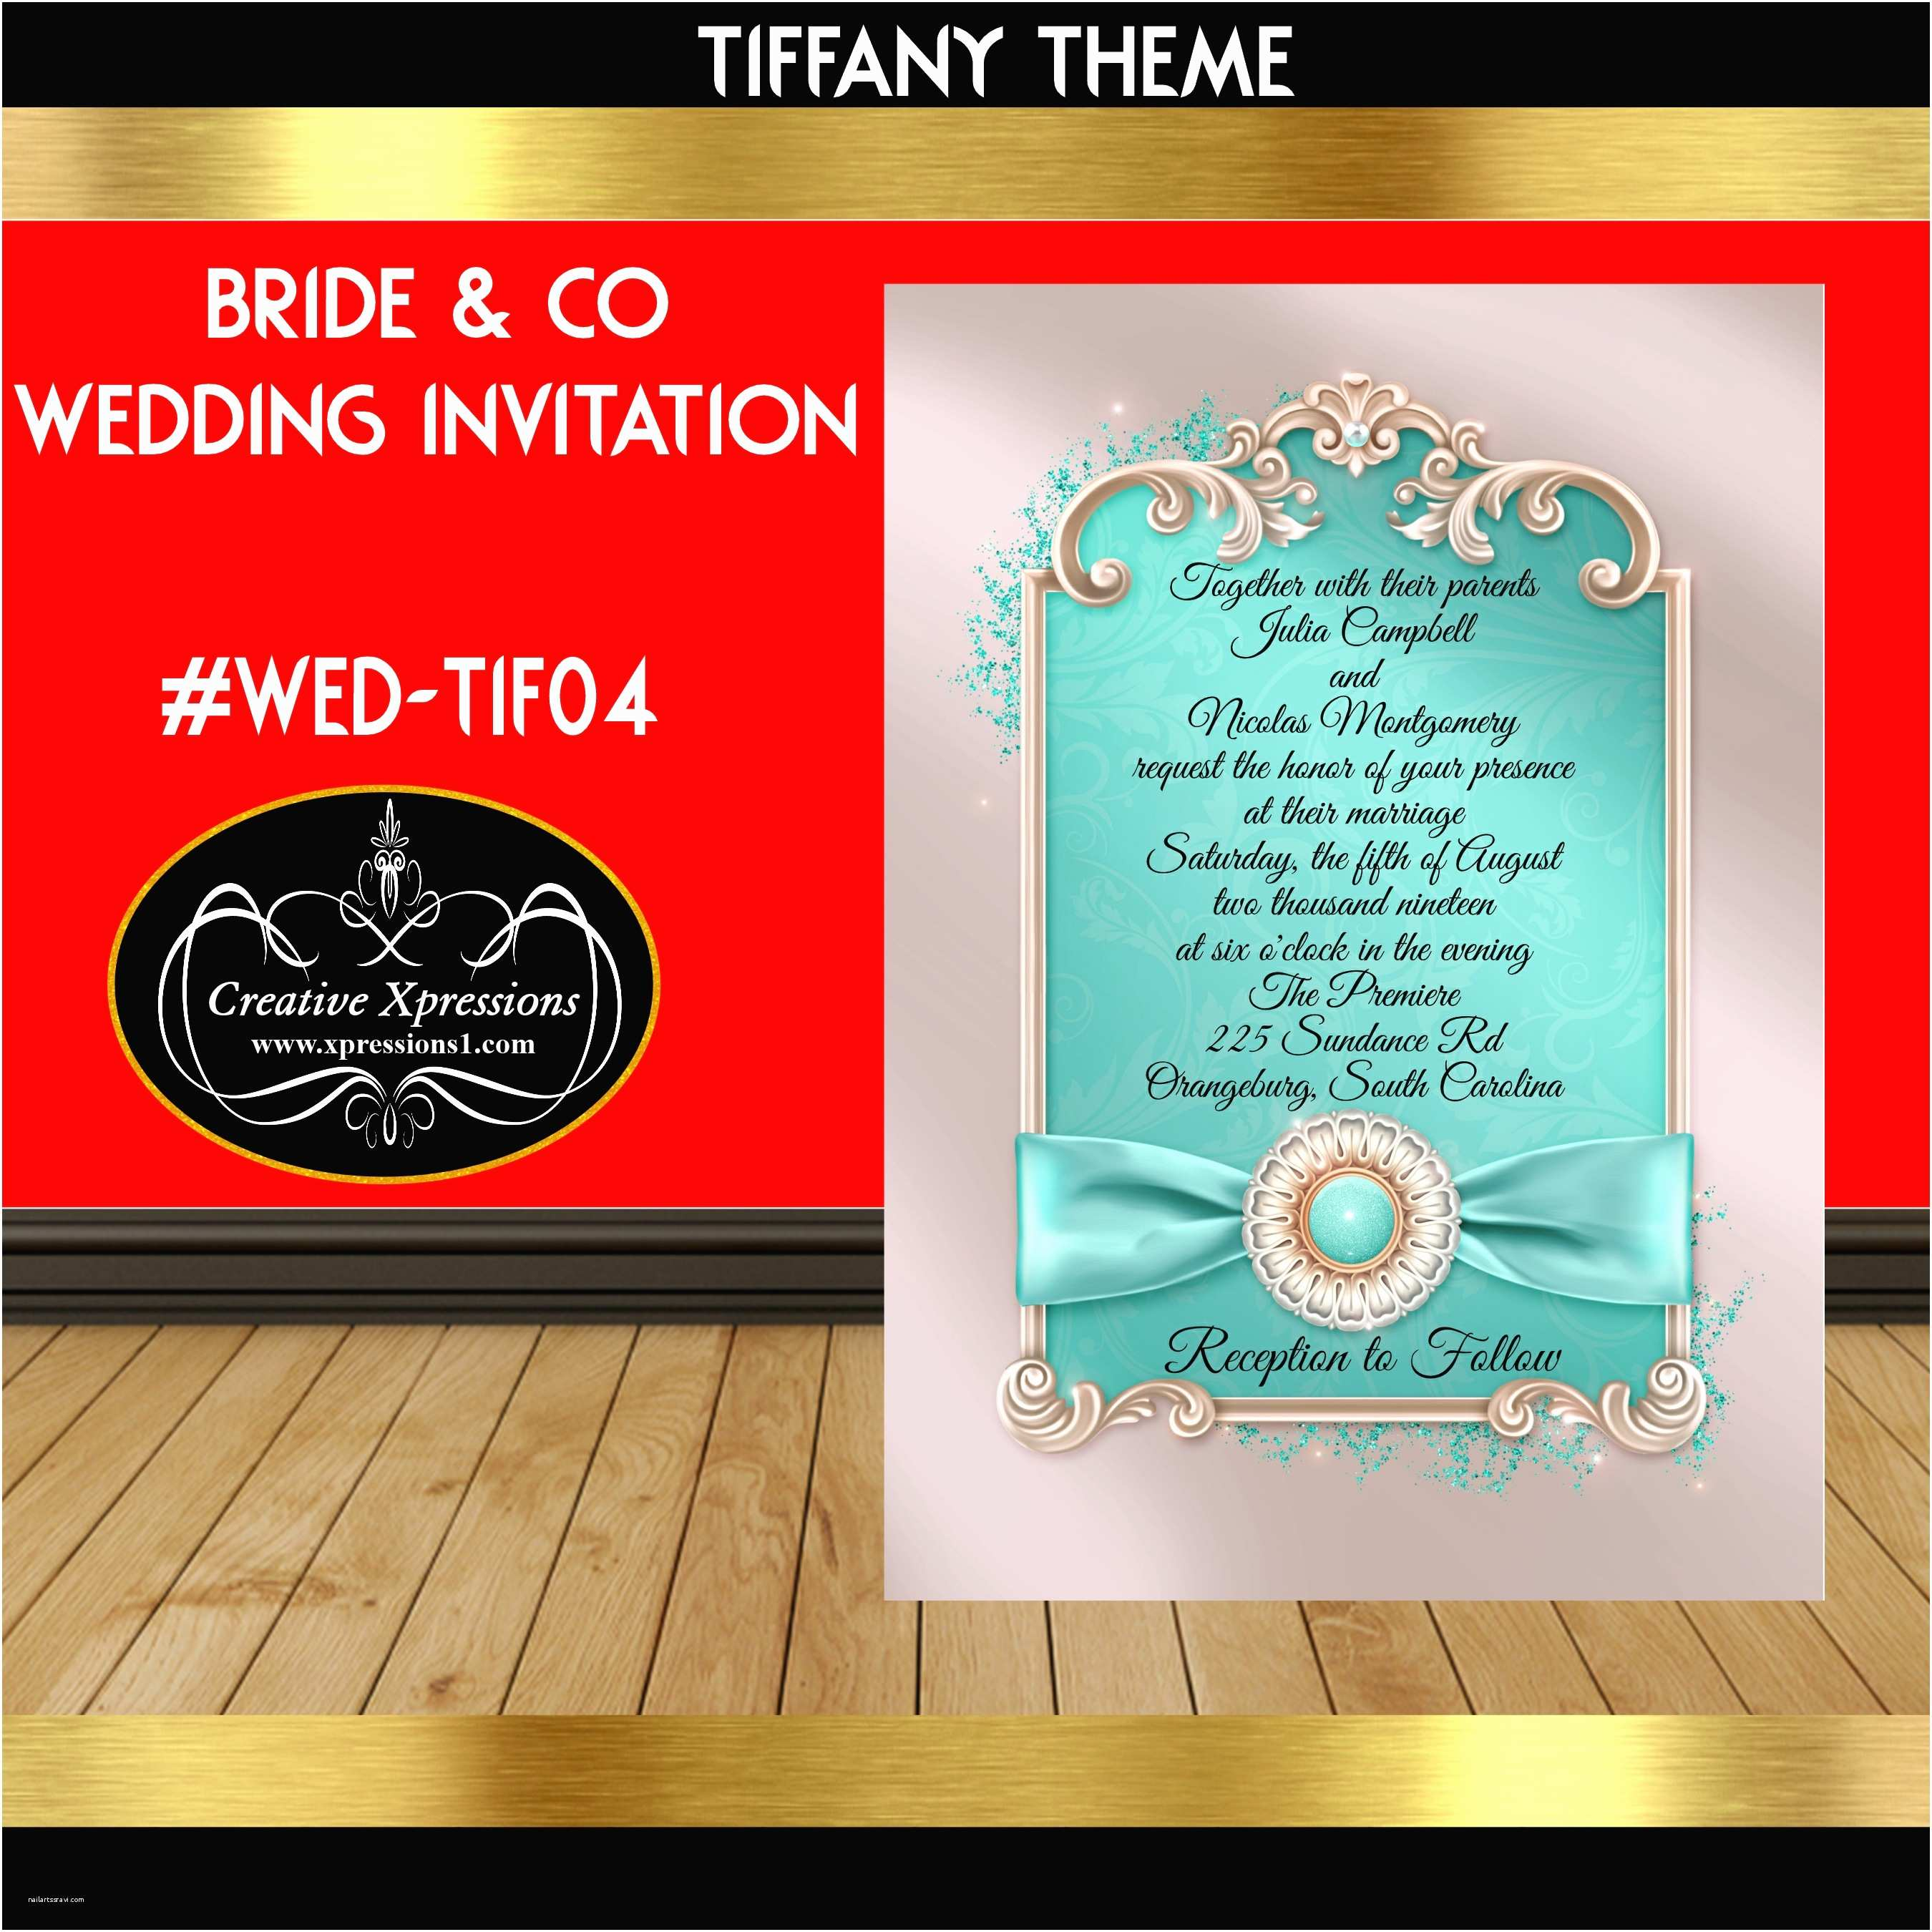 Wedding Invitation Pricing Guide Funky Wedding Invitations Pricing Pattern Invitations